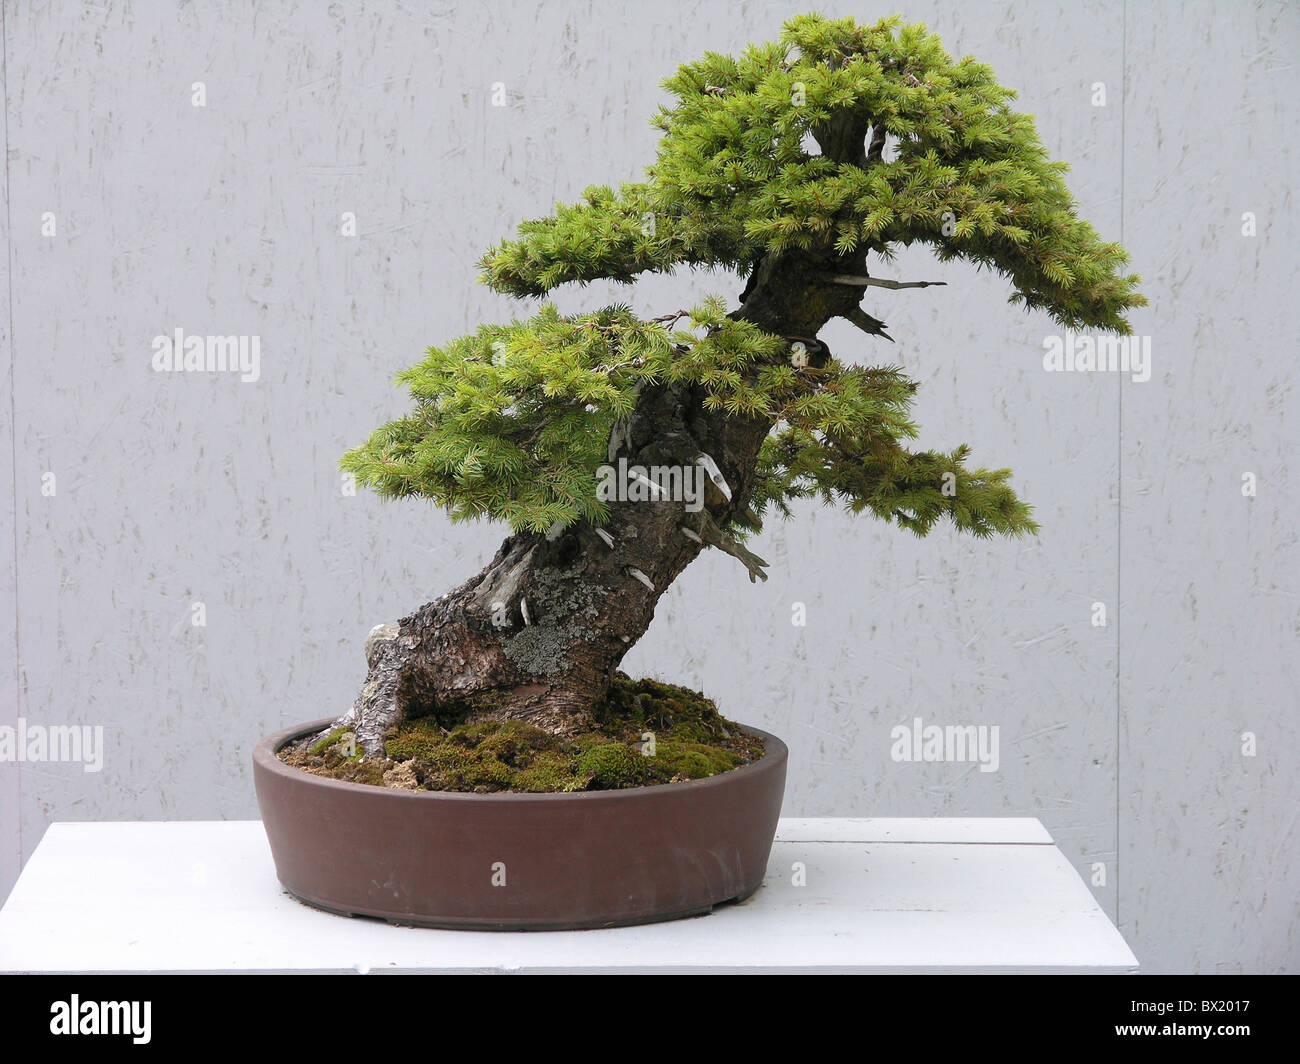 bonsai kleine konifere nadel pflanze topf baum stockfoto bild 33235363 alamy. Black Bedroom Furniture Sets. Home Design Ideas